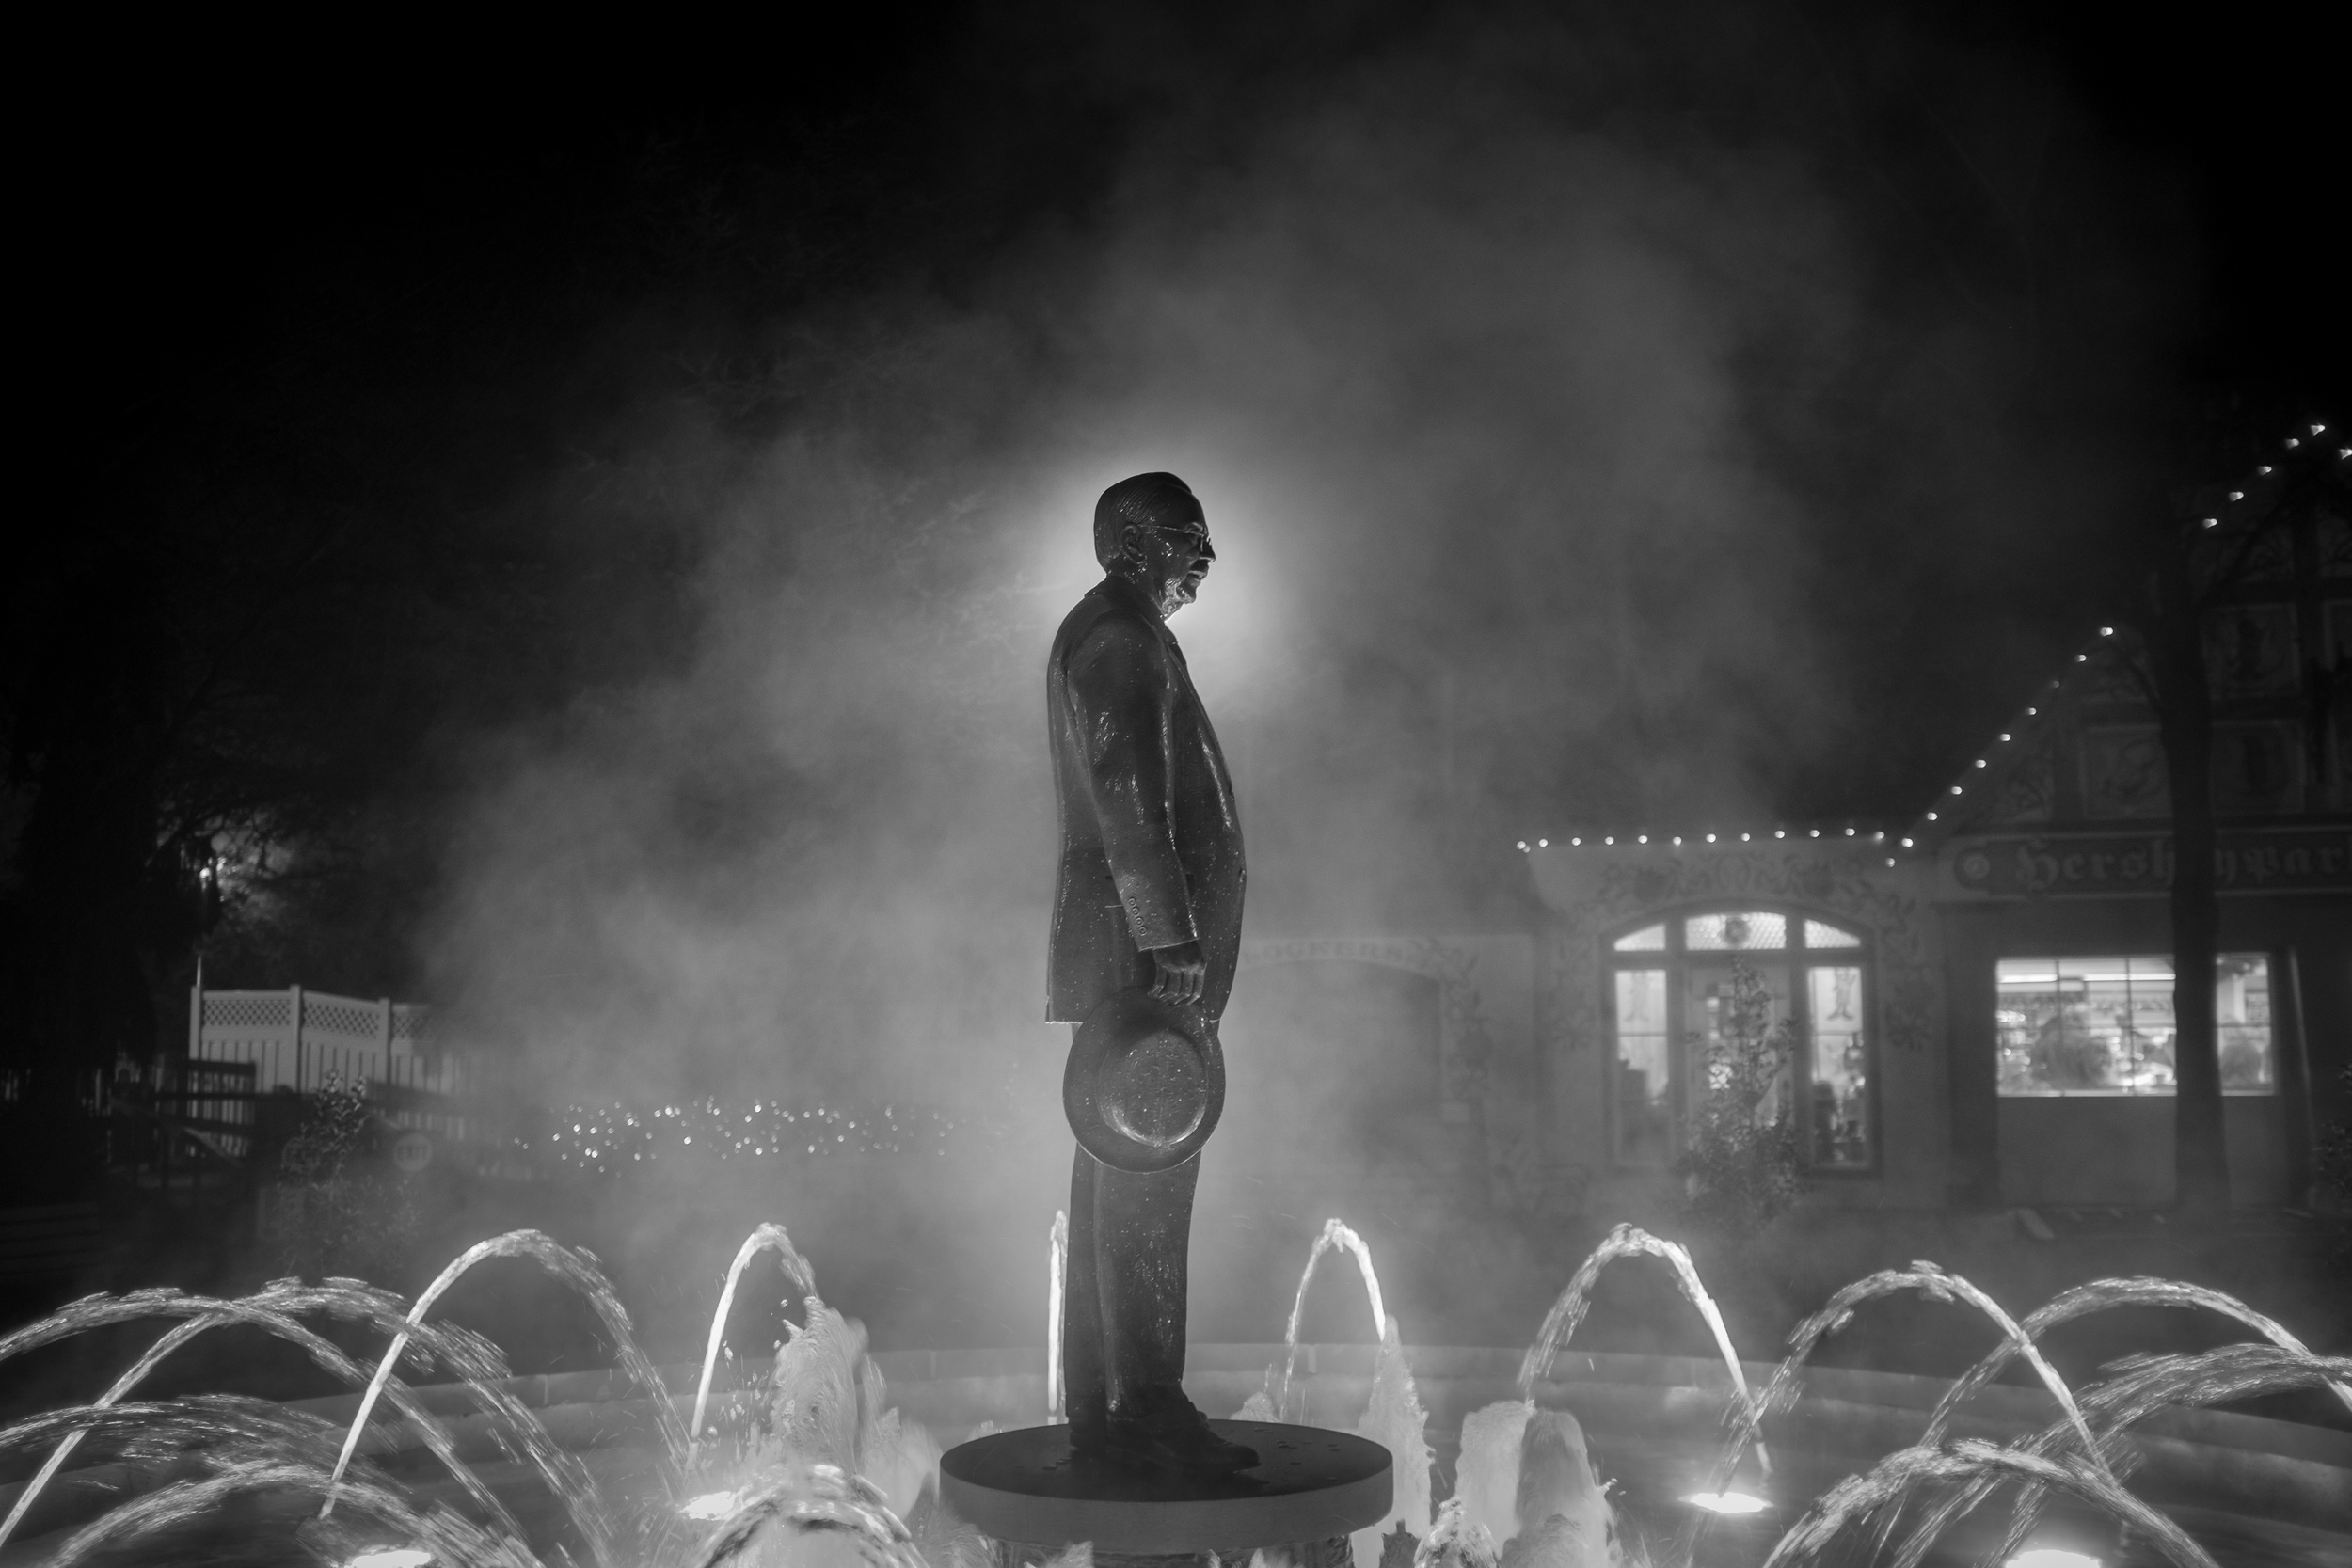 The statue of Milton Hershey seems to be rising from the steam caused by unseasonable warm weather. Fujifilm X100S,1/ 30 @f2.0, ISO 320.